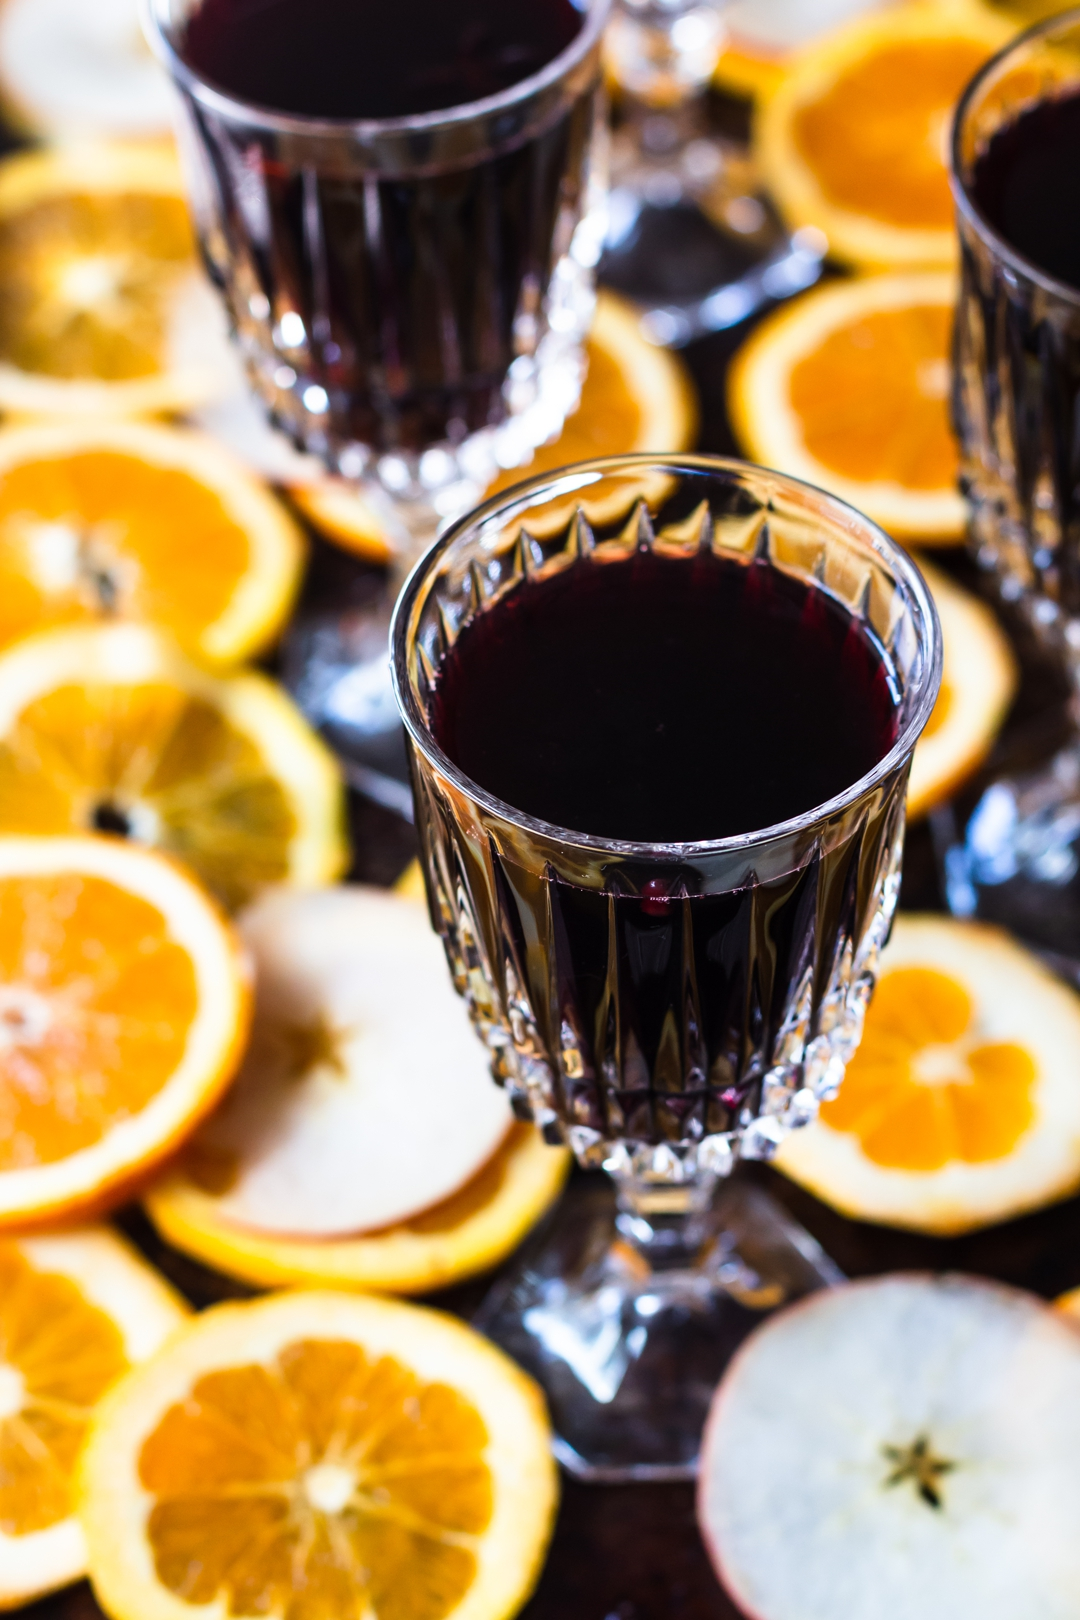 45 degree shot of glasses filled with mulled wine surrounded by sliced oranges and apples.